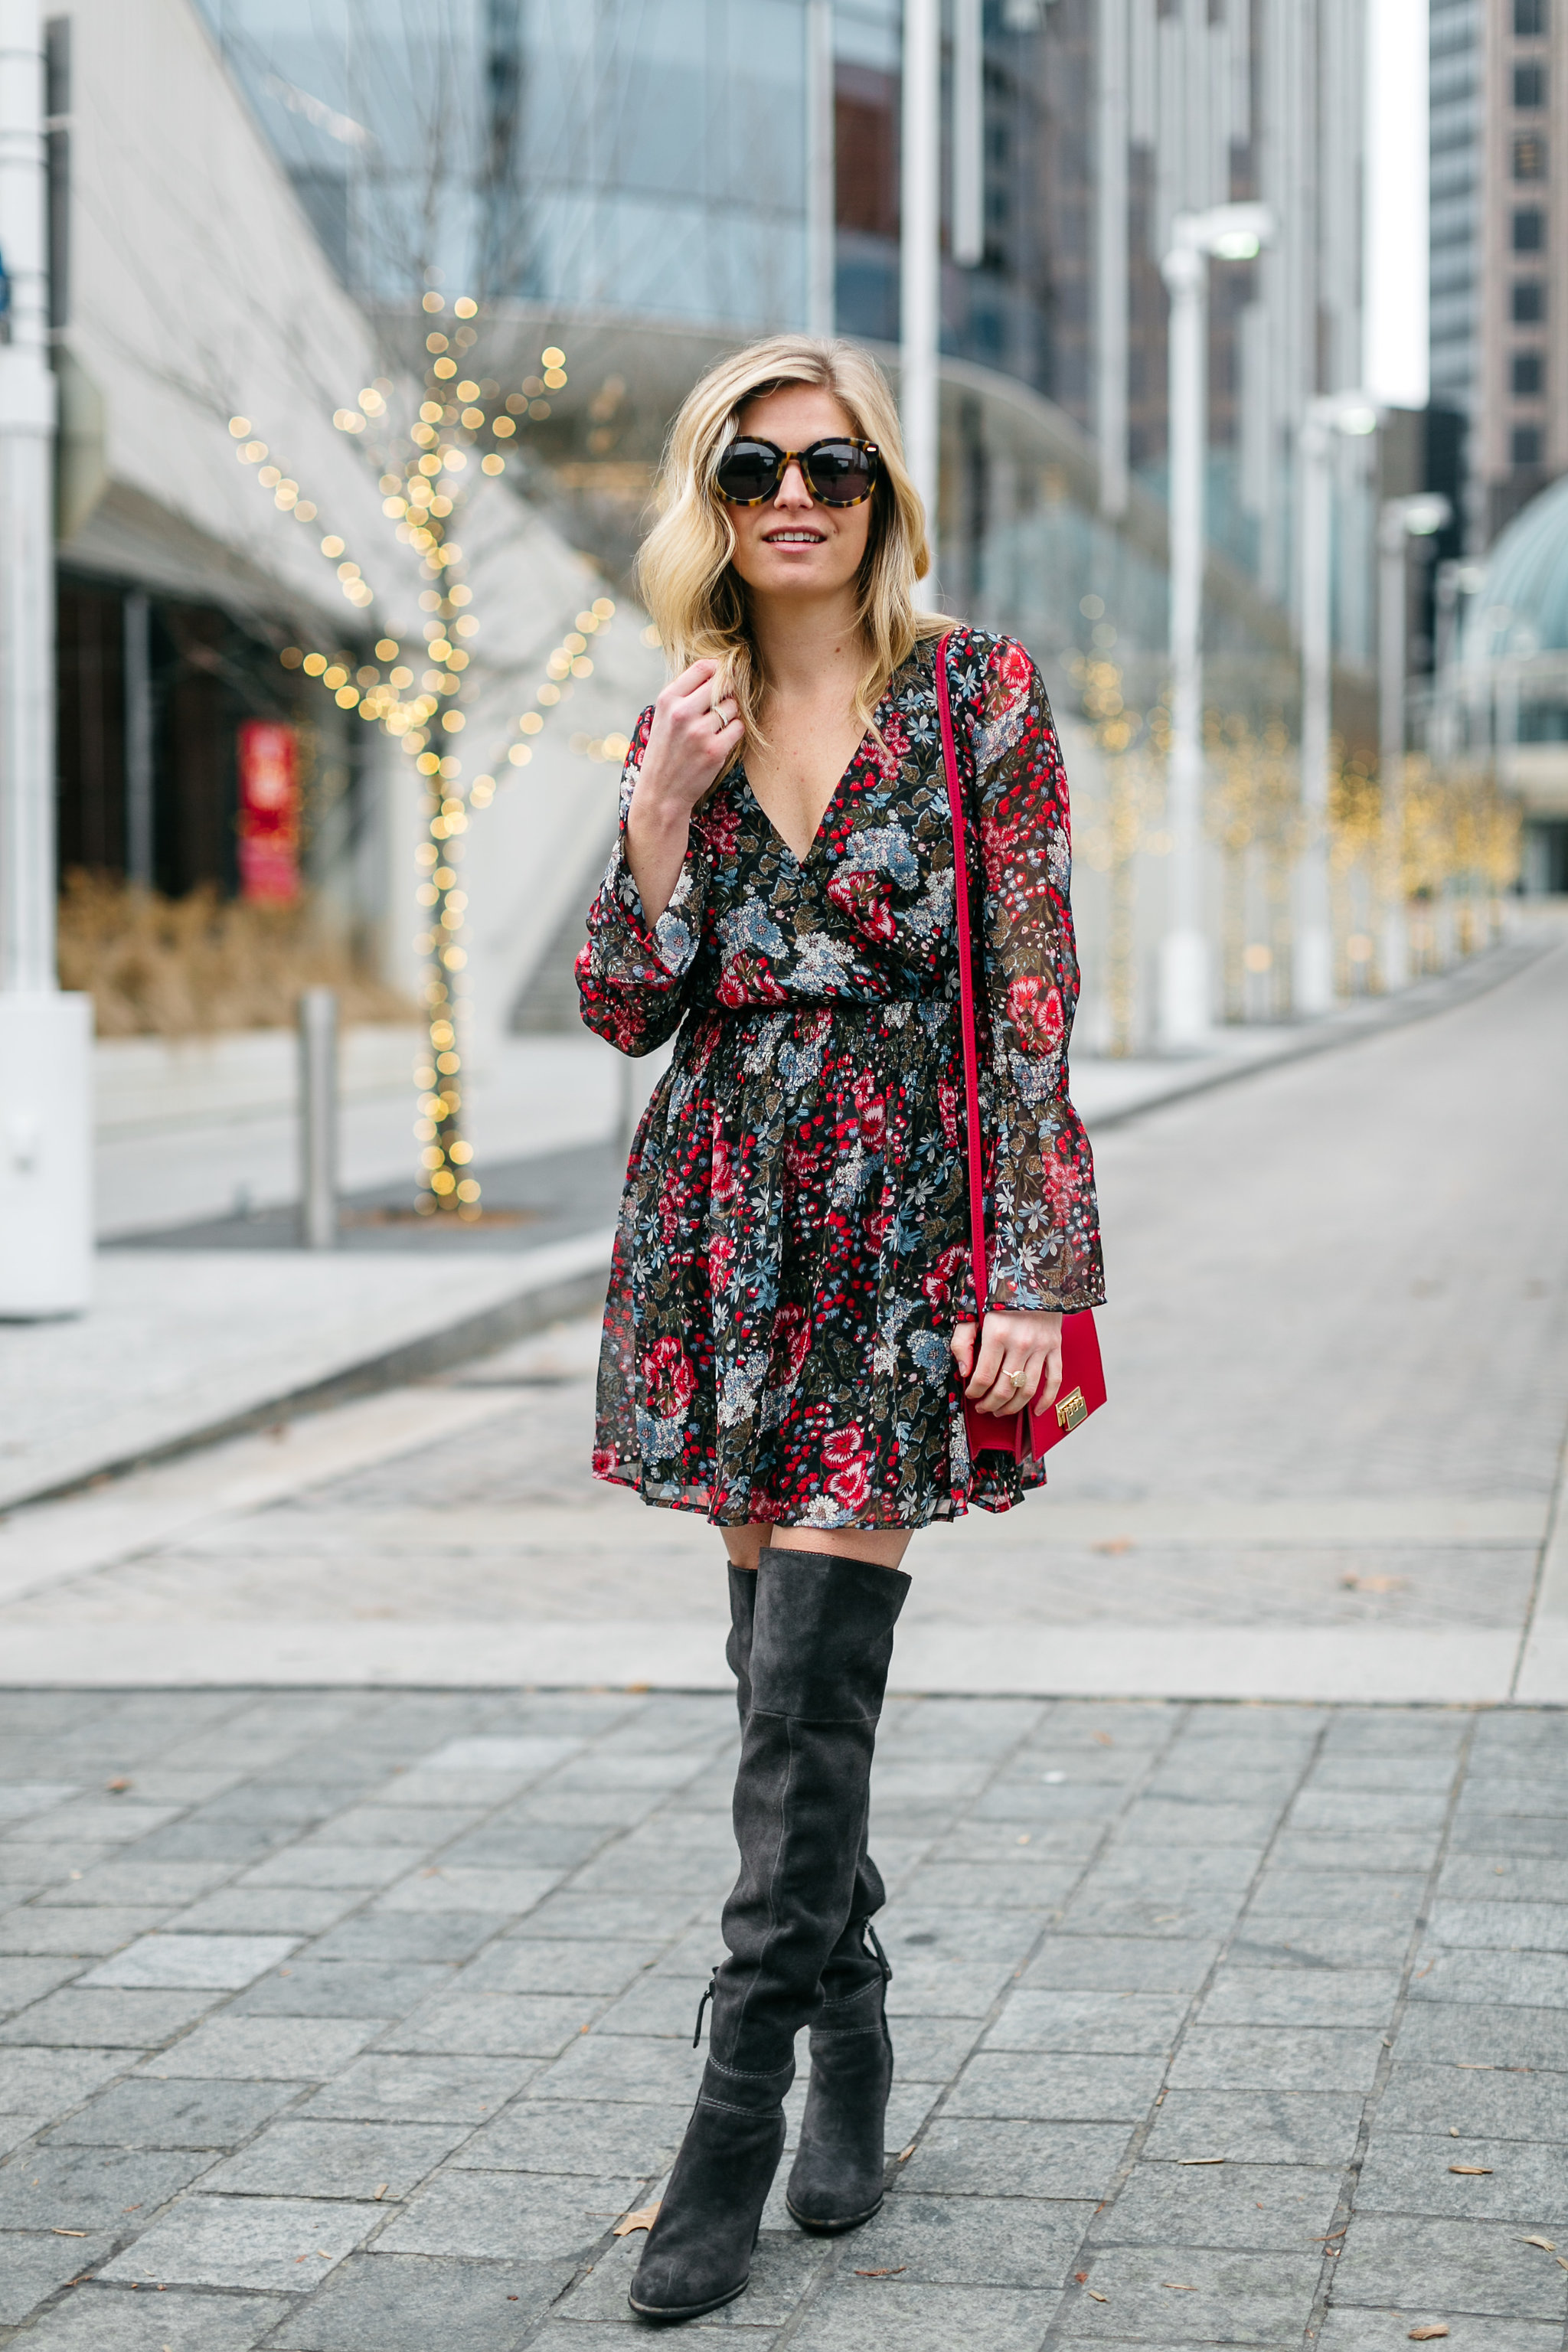 Floral dress with over-the-knee boots